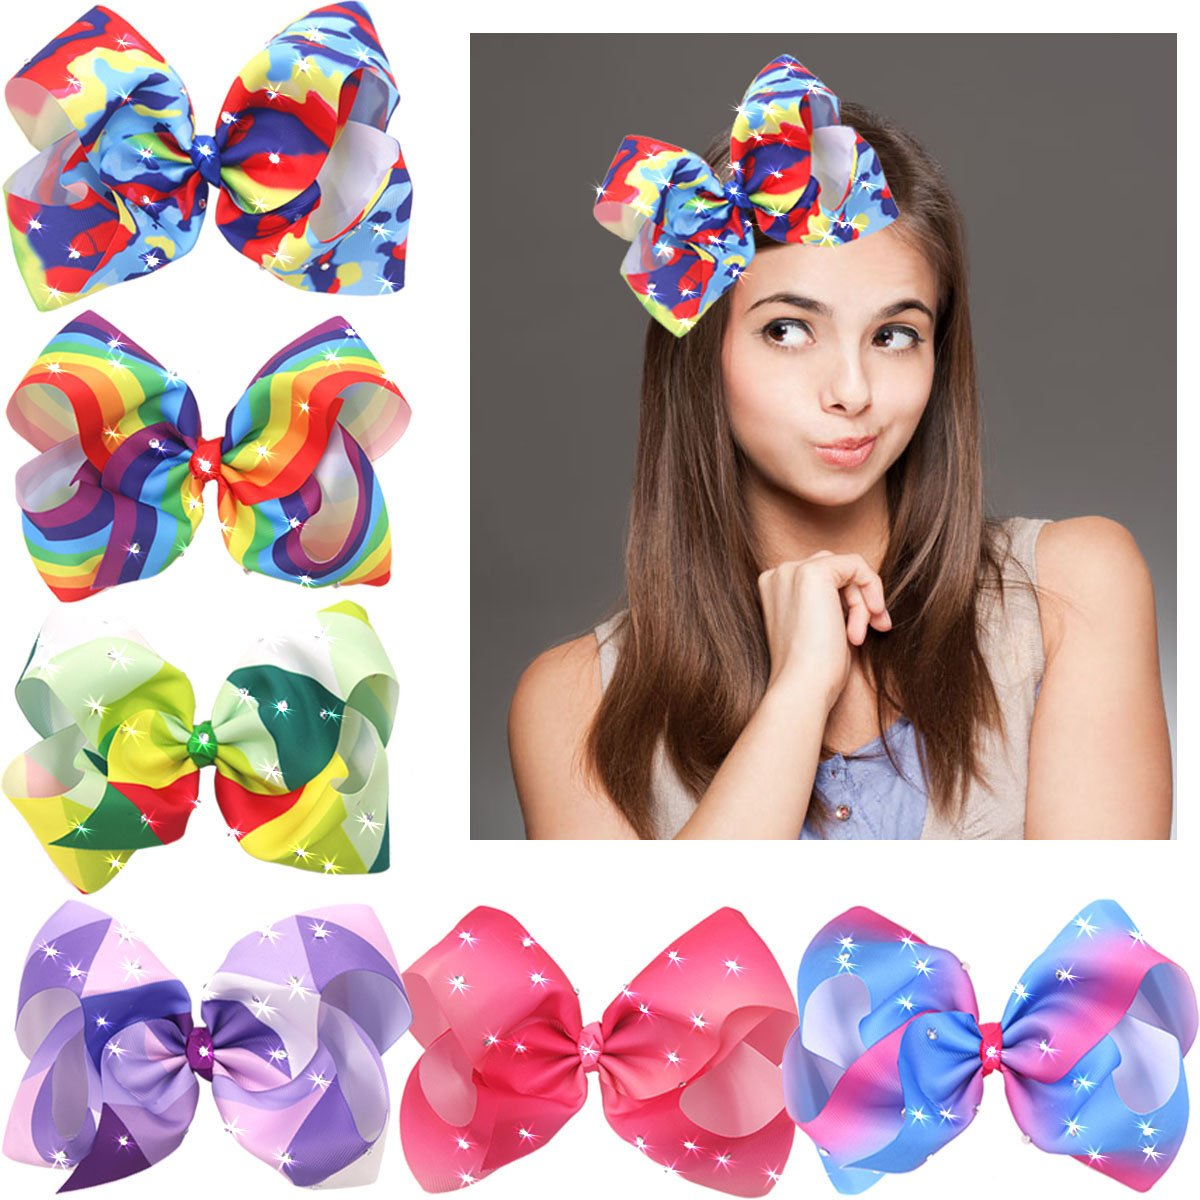 8 Inches Big Giant Grosgrain Ribbon Boutique Bling Sparkly Rainbow Hair Bows Clips For Baby Girls Teens Toddlers Gifts Set Of 6 by CELLOT